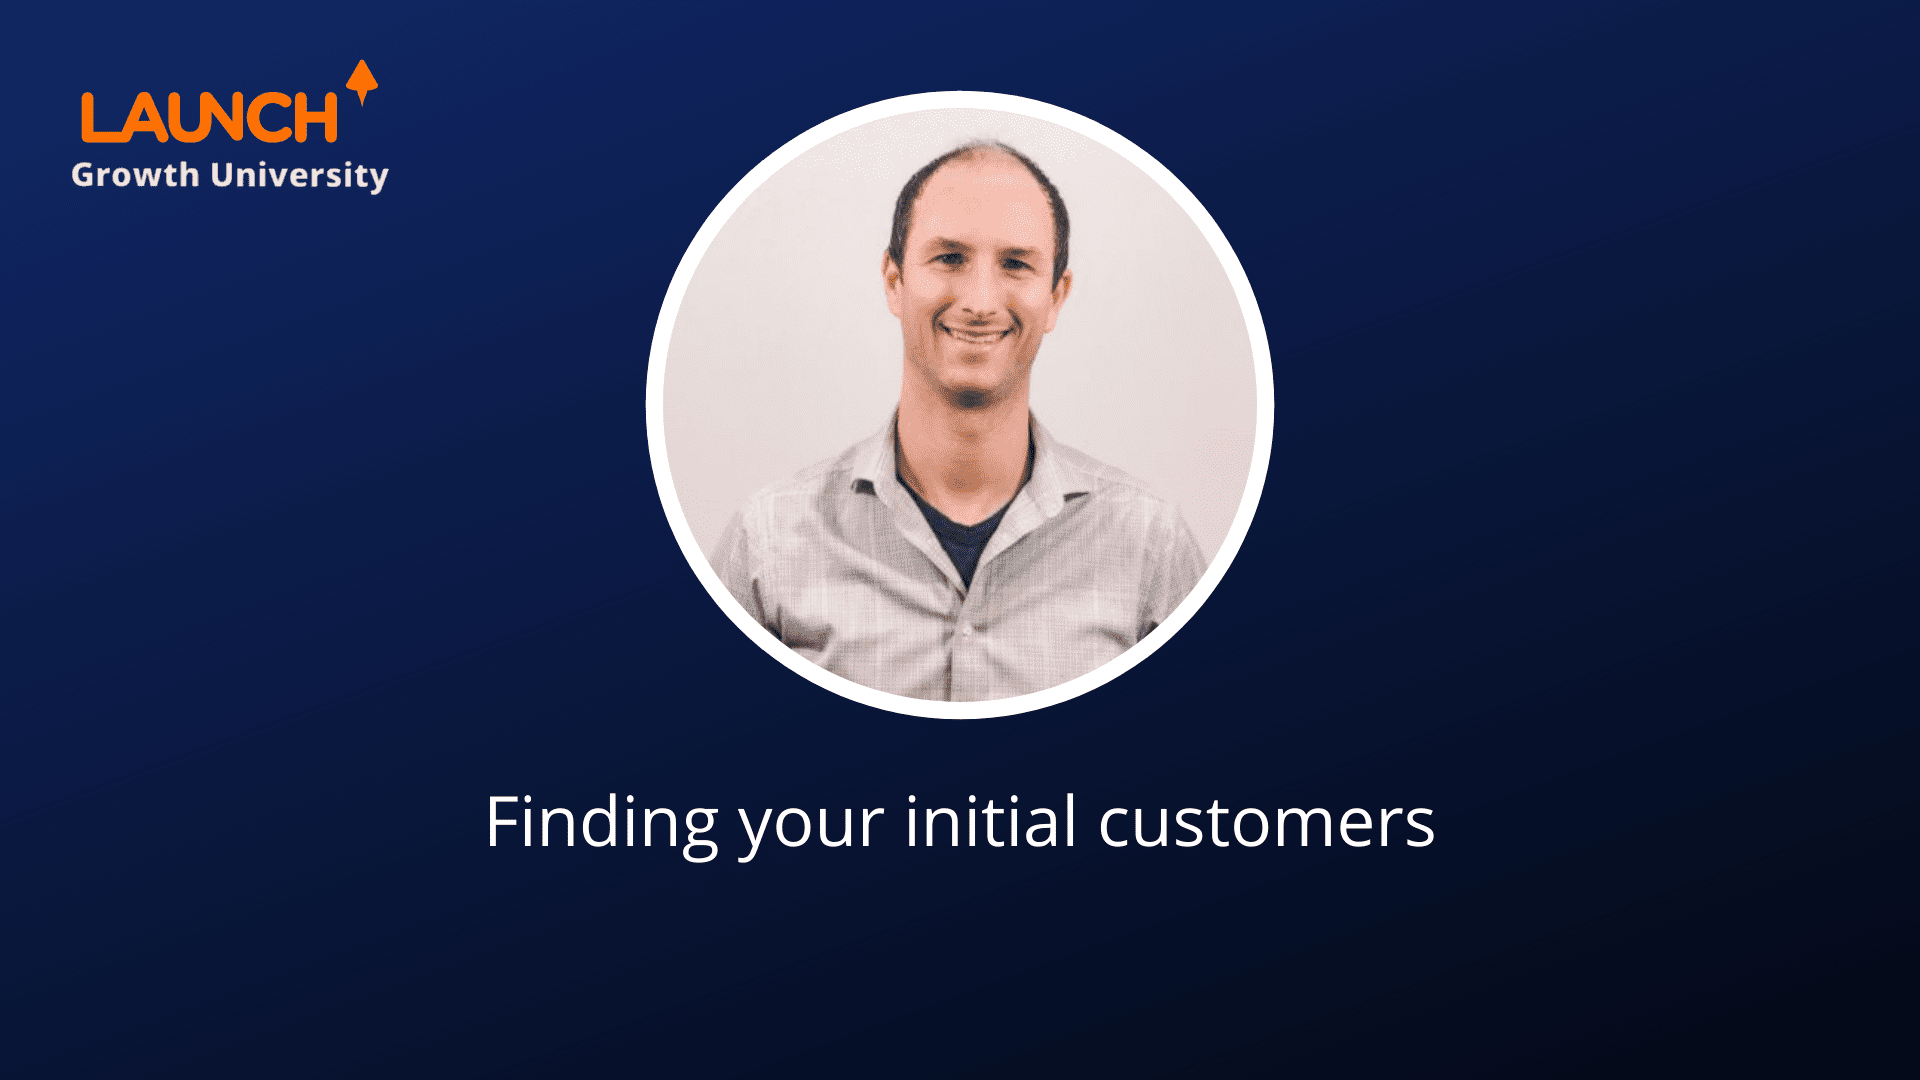 Finding your initial customers